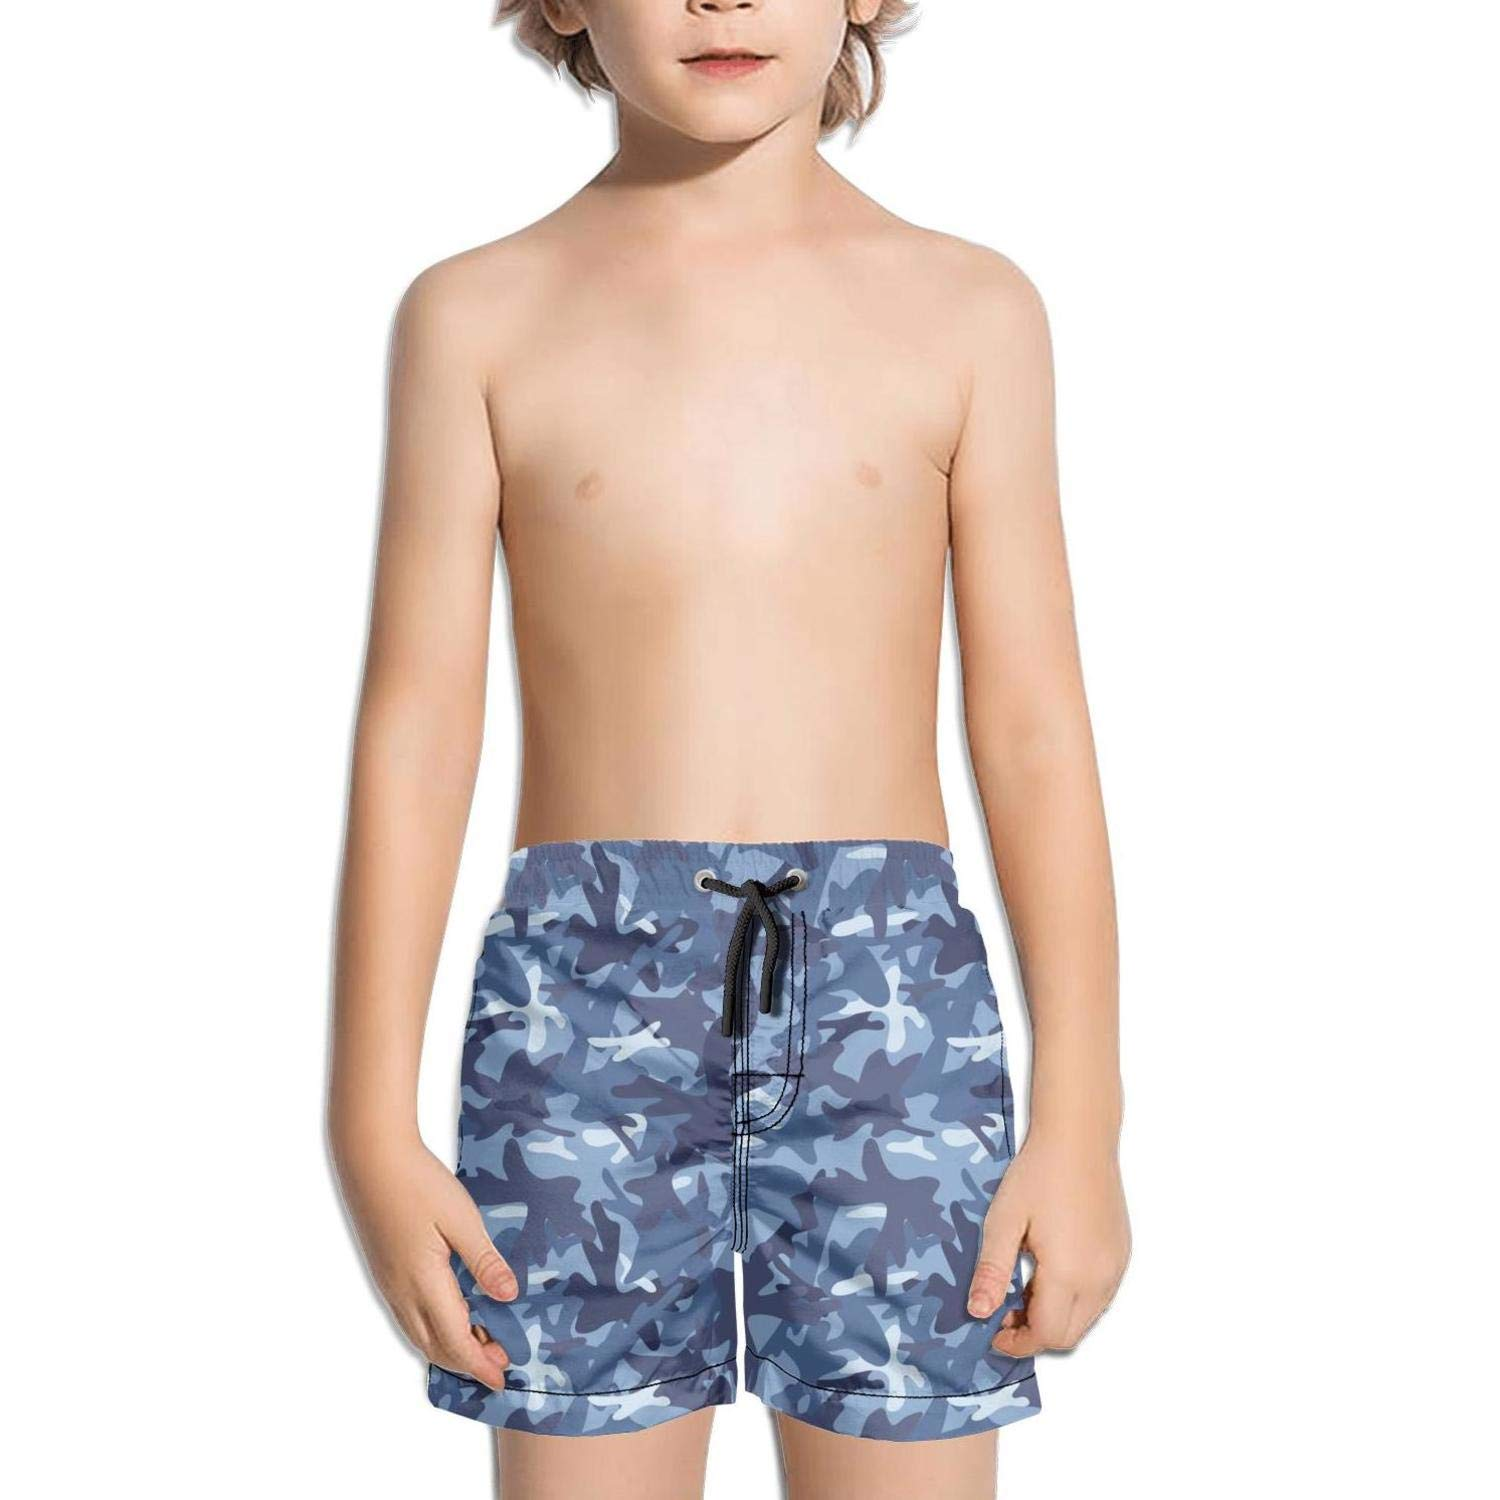 Blue Camouflage Mesh Lining Fully Lined Side Split Swimming Trunks Shorts